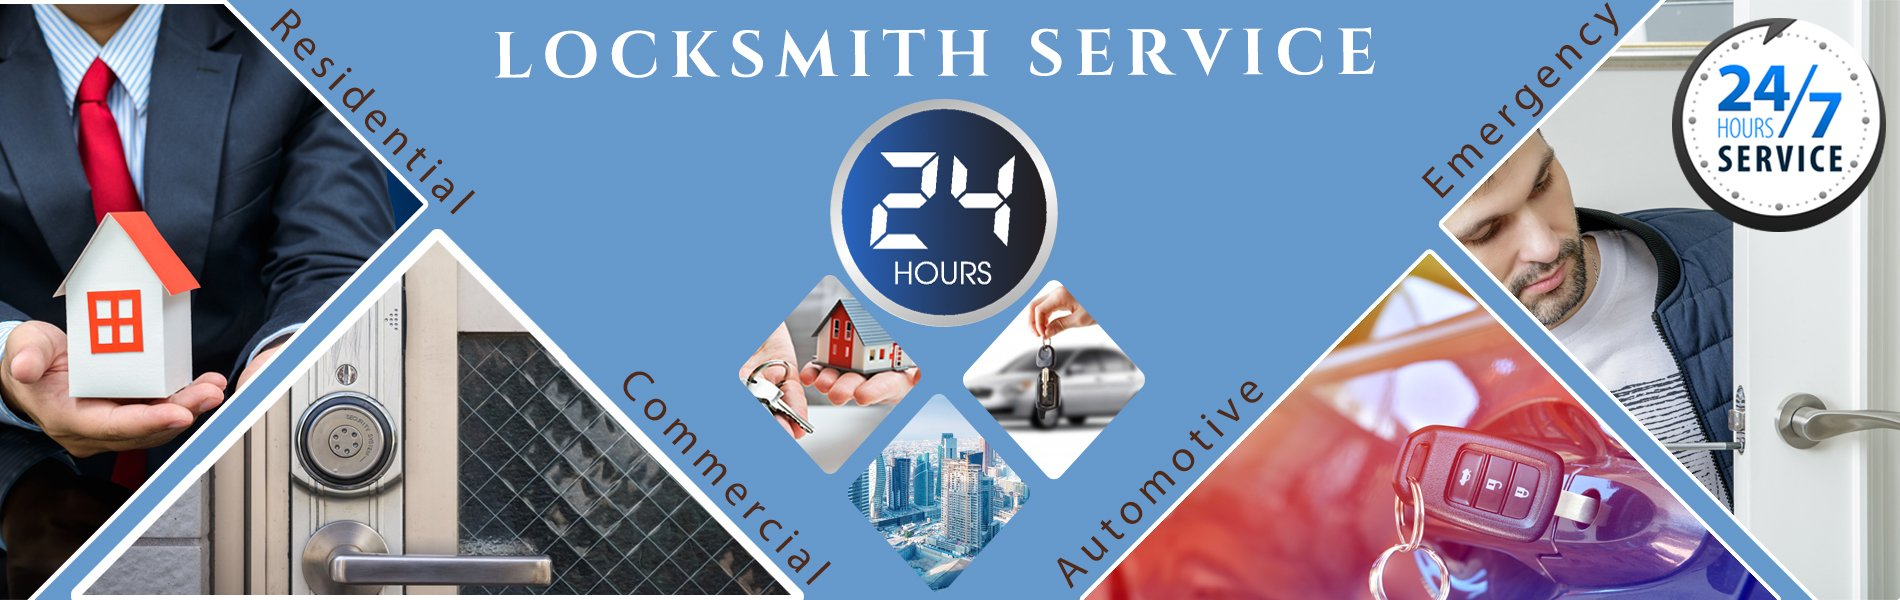 State Locksmith Services St Petersburg, FL 727-264-5642